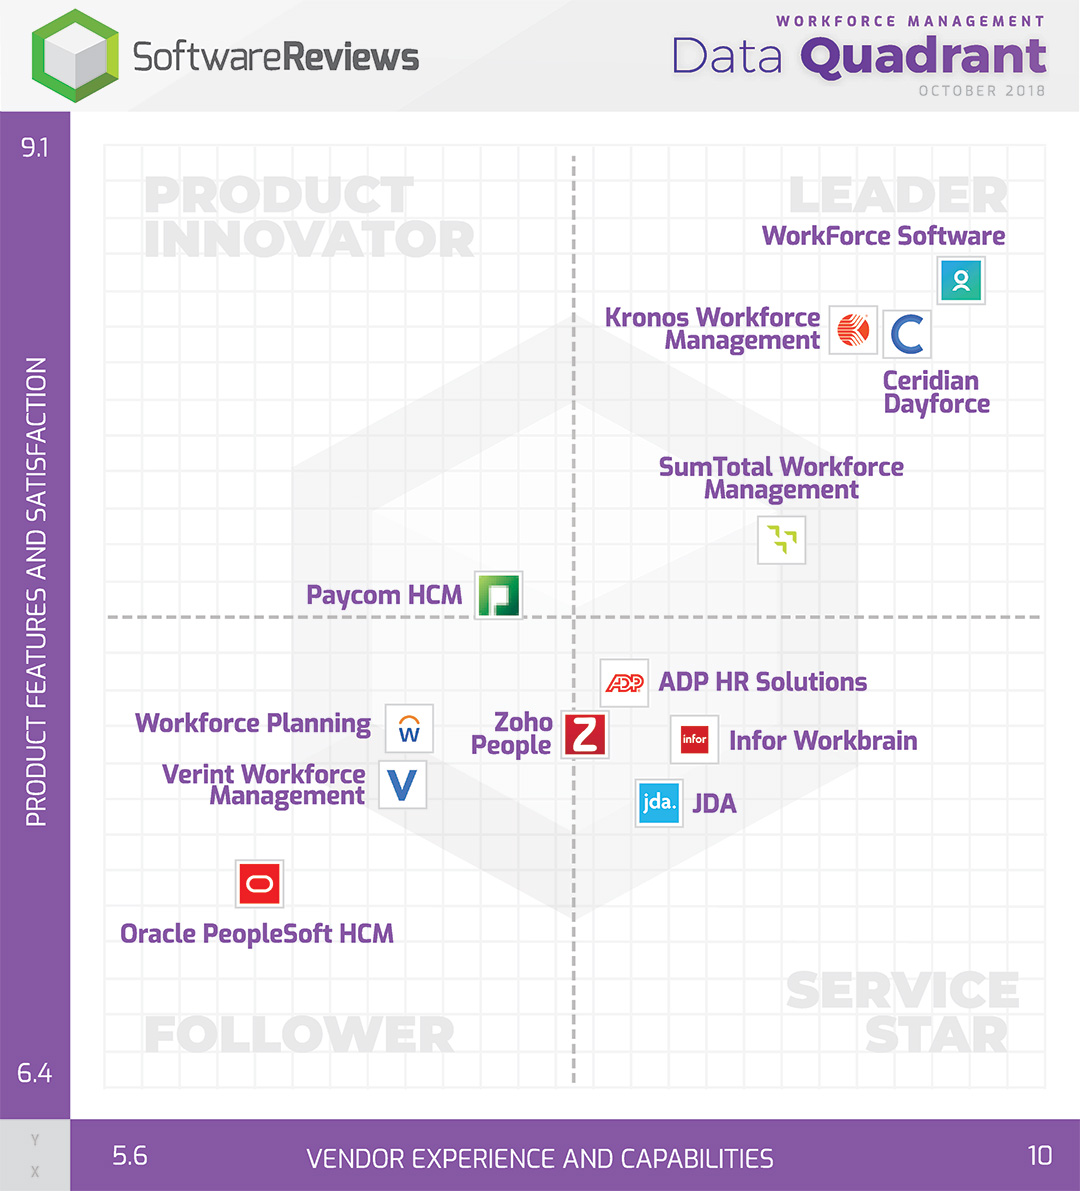 Software Reviews Data Quadrant